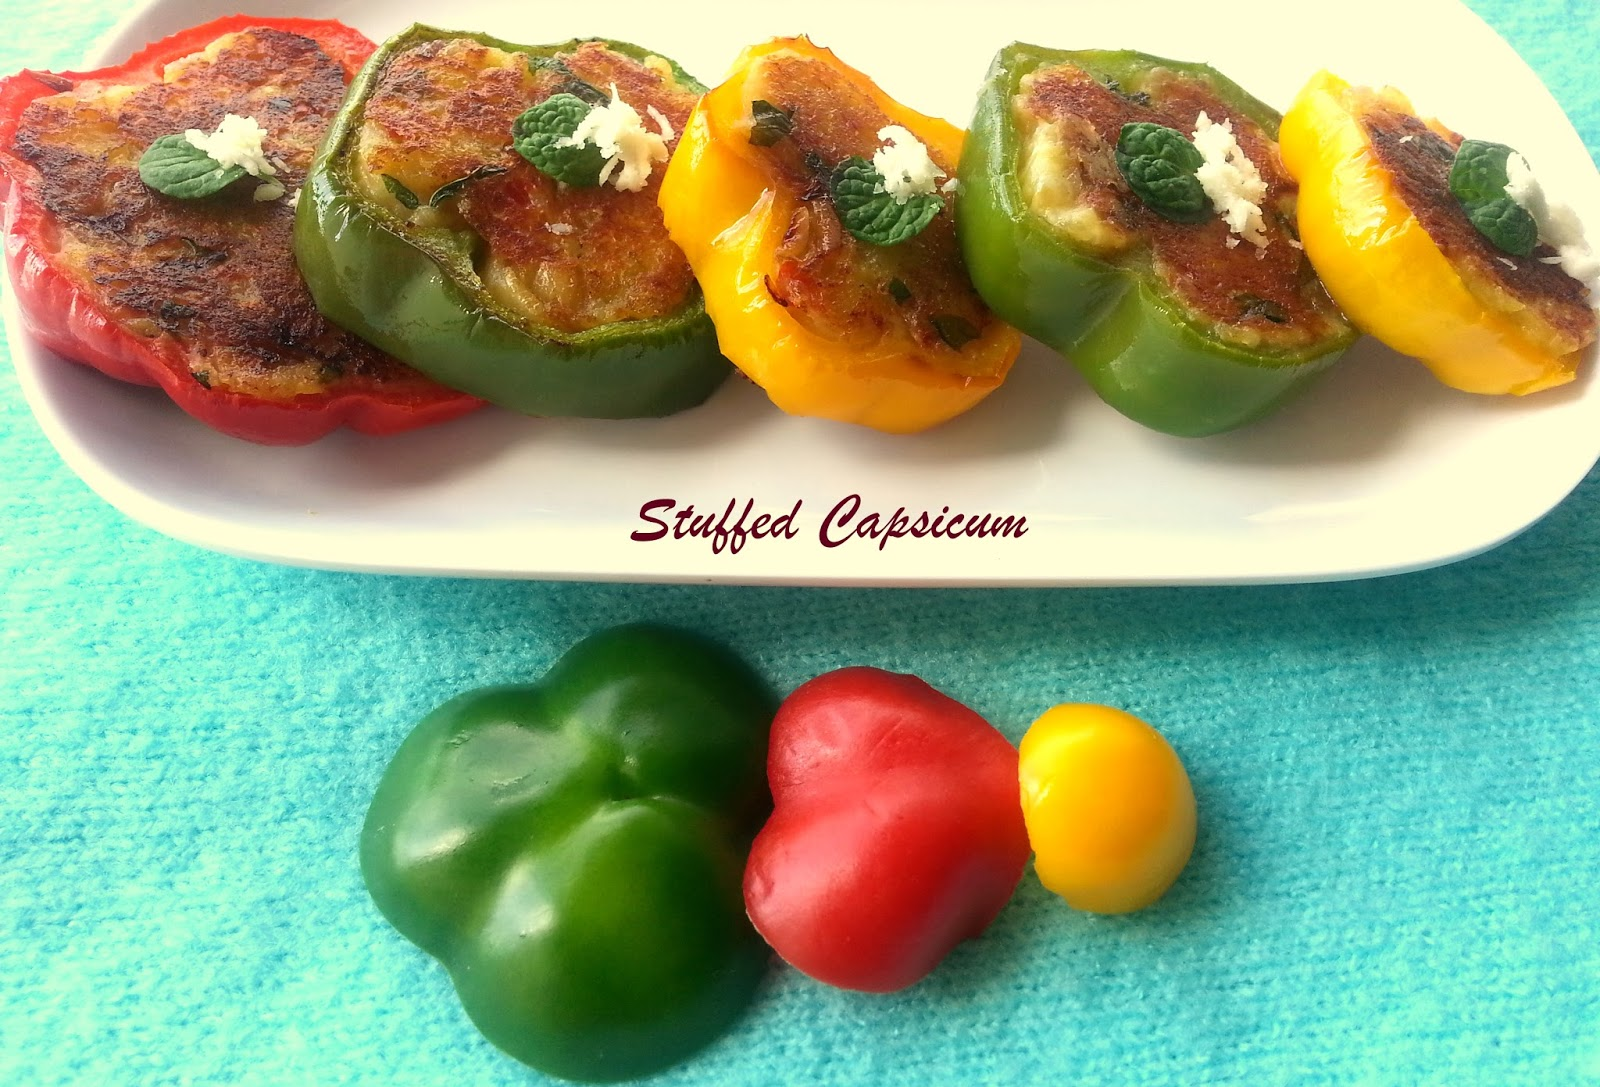 Annapurna stuffed bell peppers vegetarian starter recipe stuffed bell peppers vegetarian starter recipe forumfinder Gallery